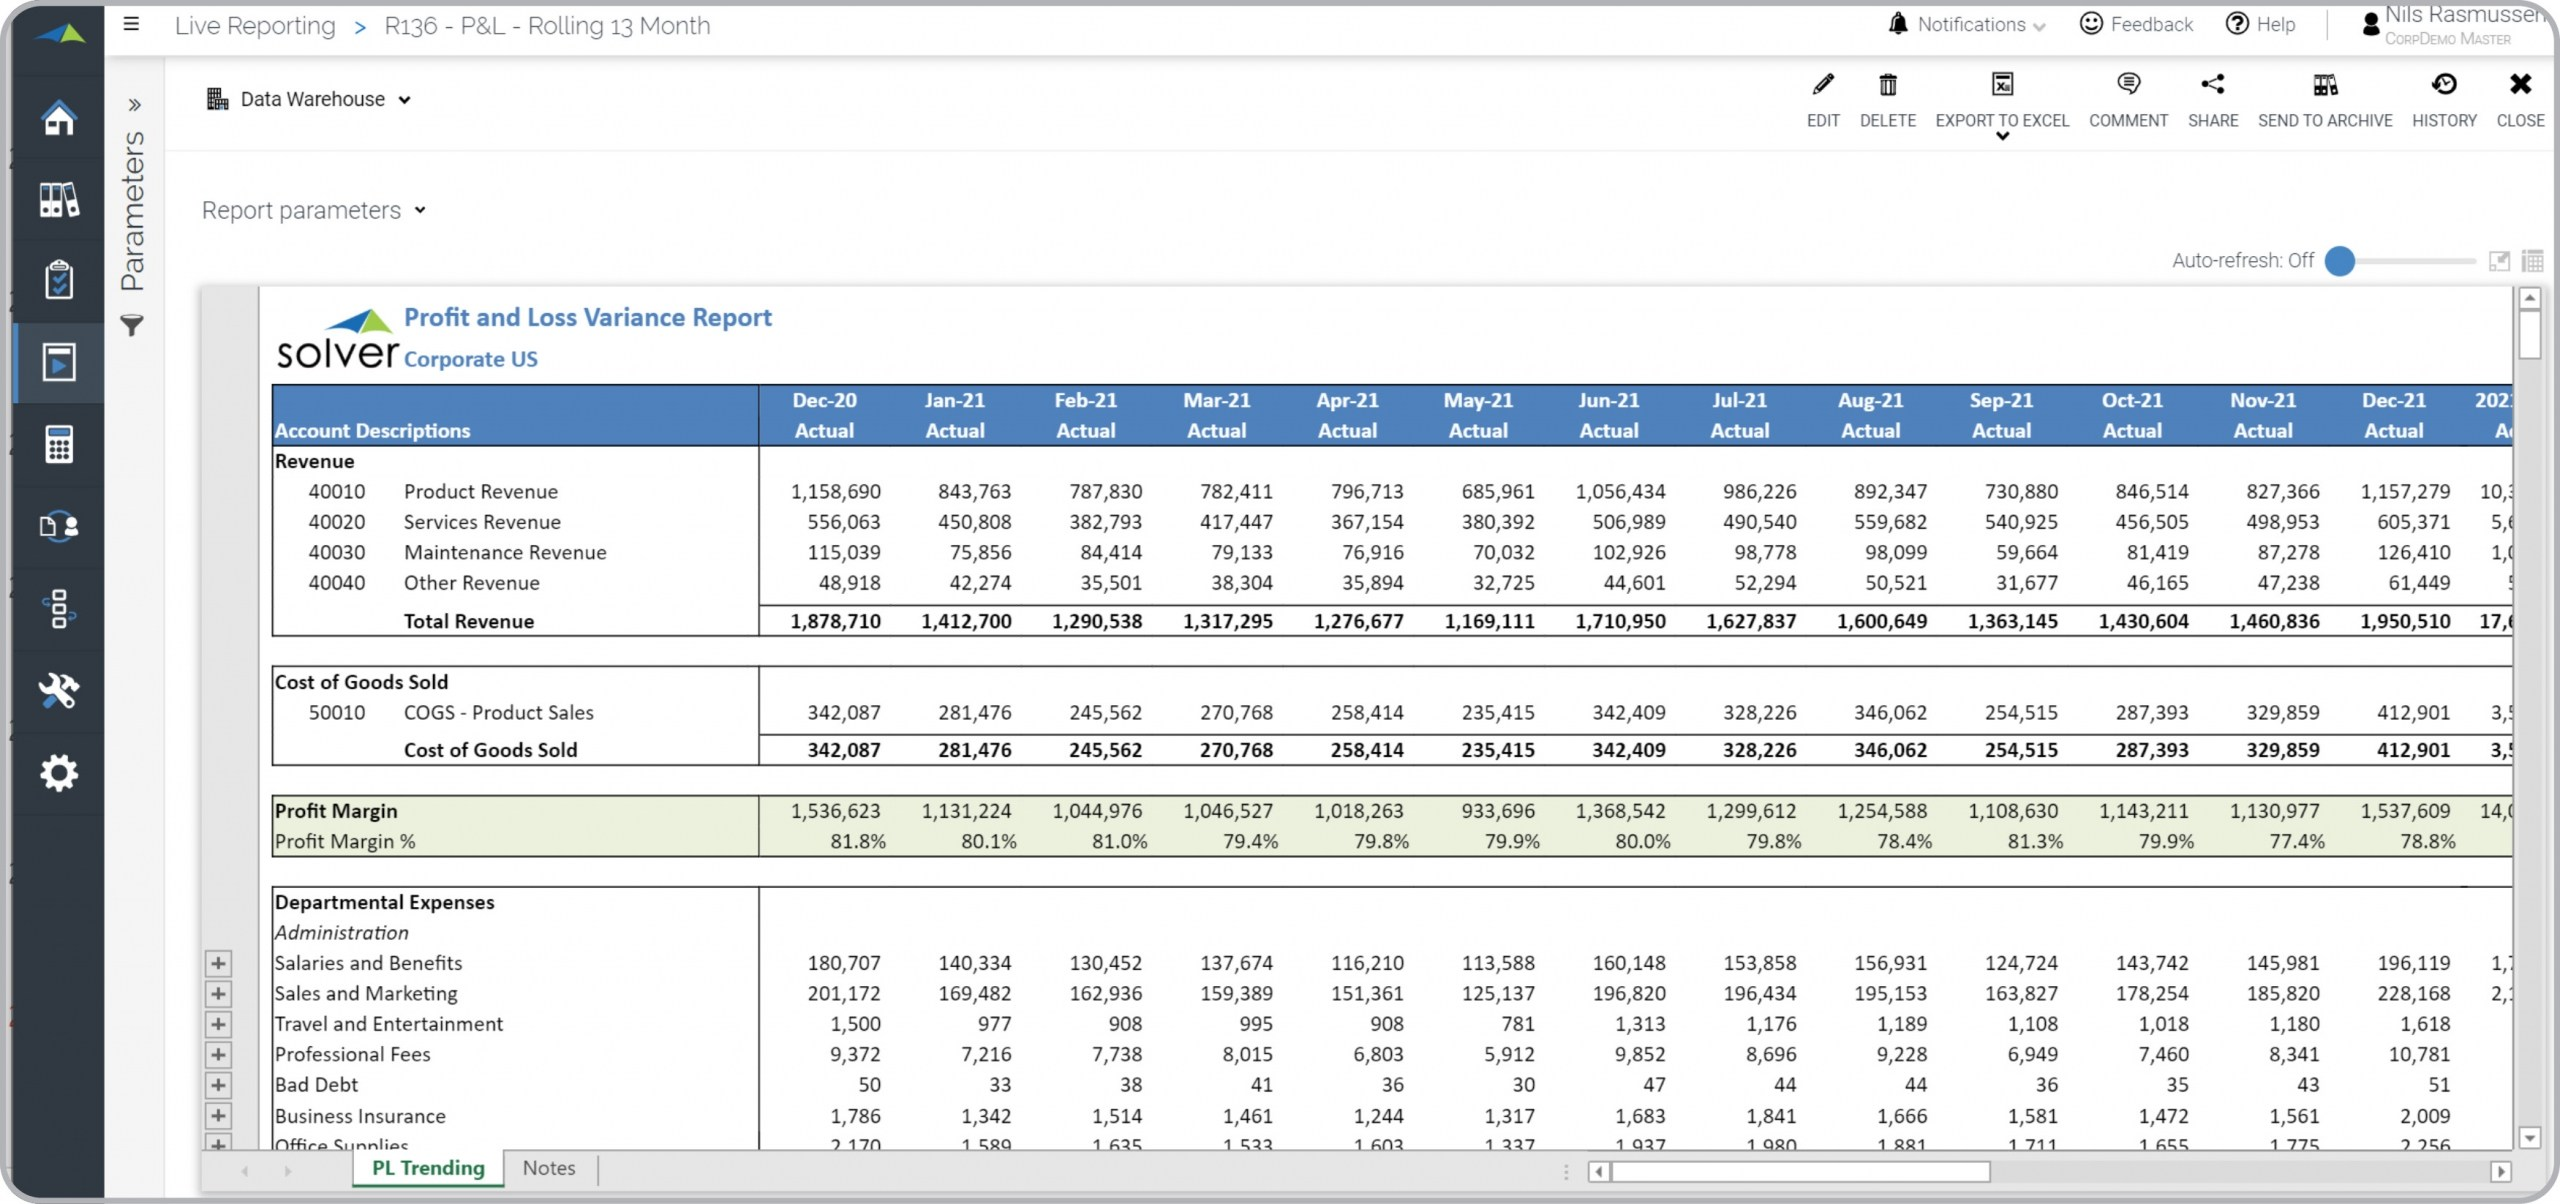 profit and loss variance report